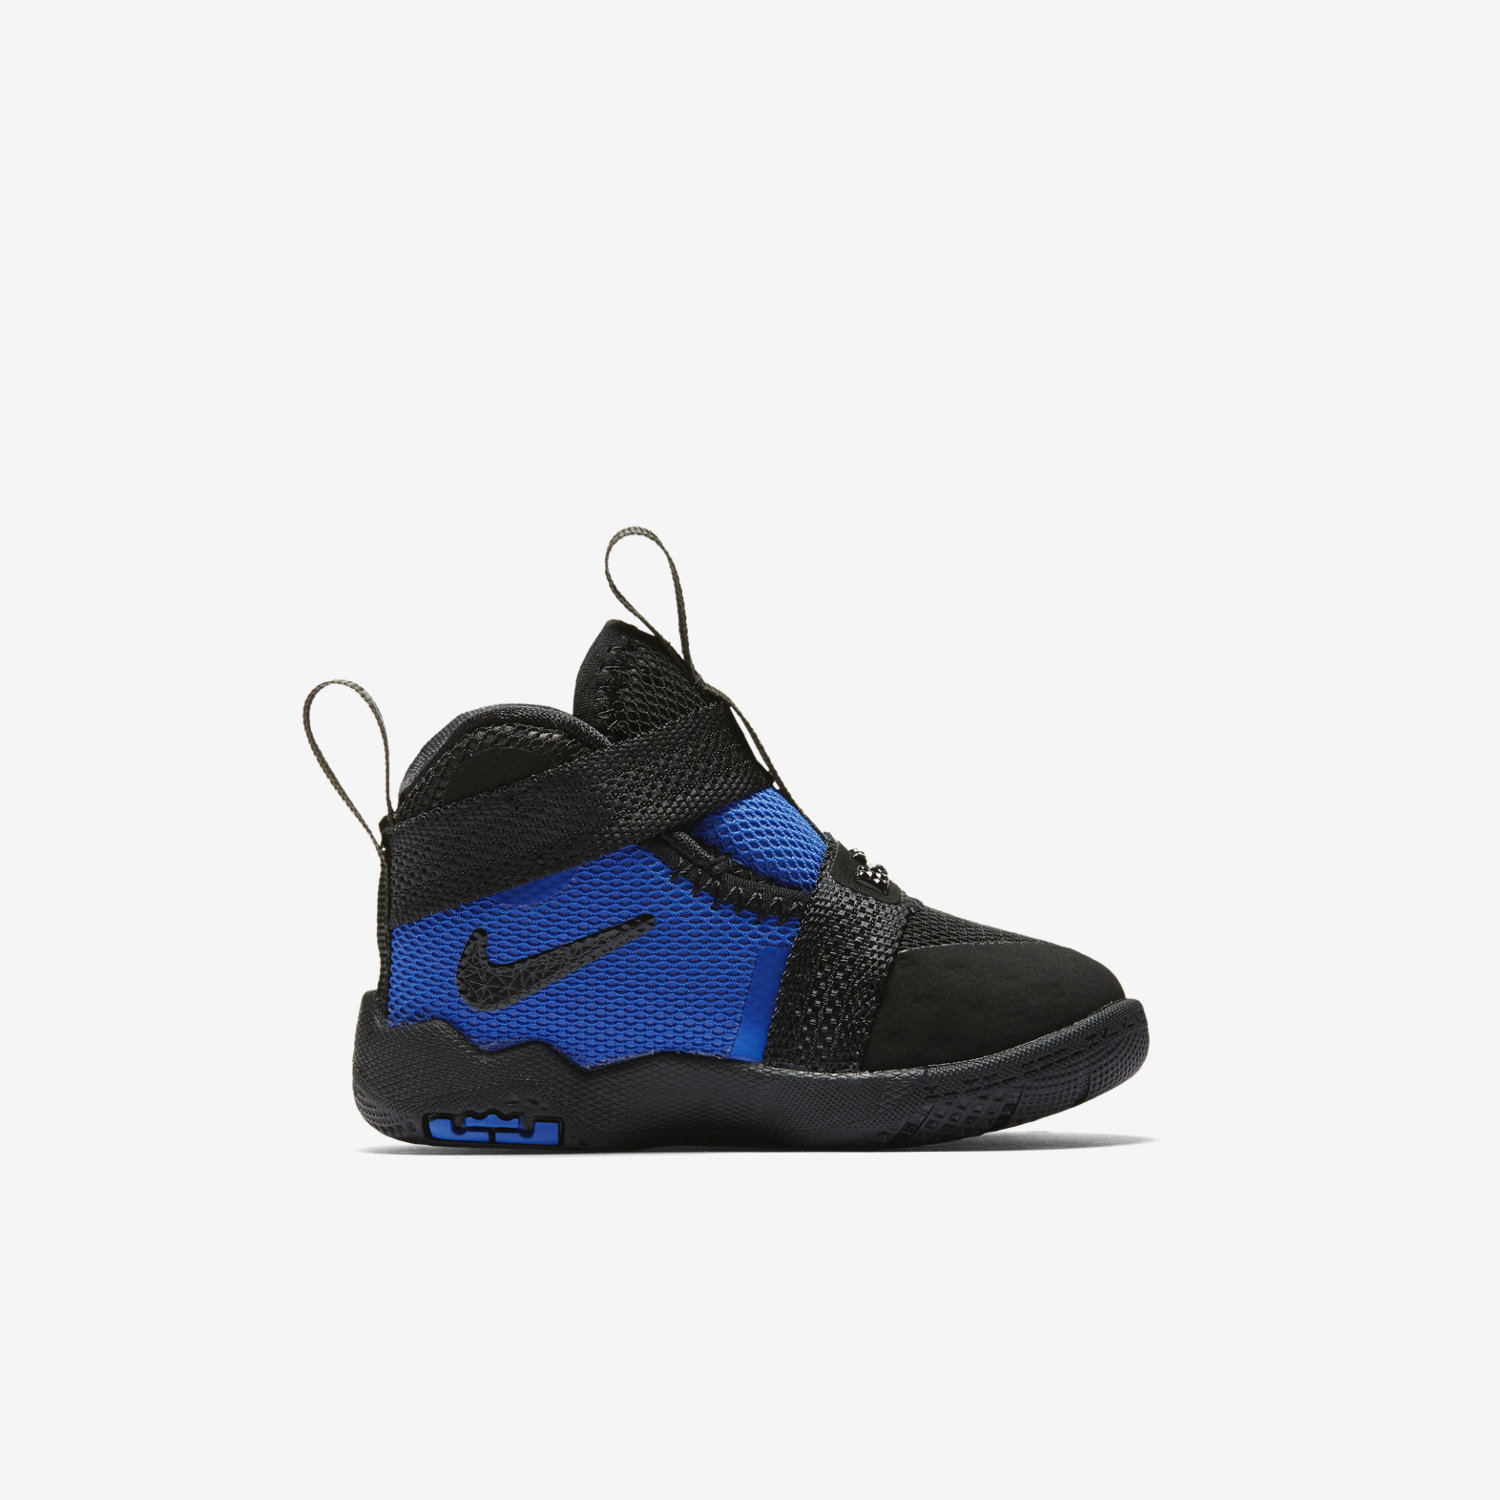 47286e448a10 ... Nike LeBron Soldier 10 Infant Toddler Shoe.